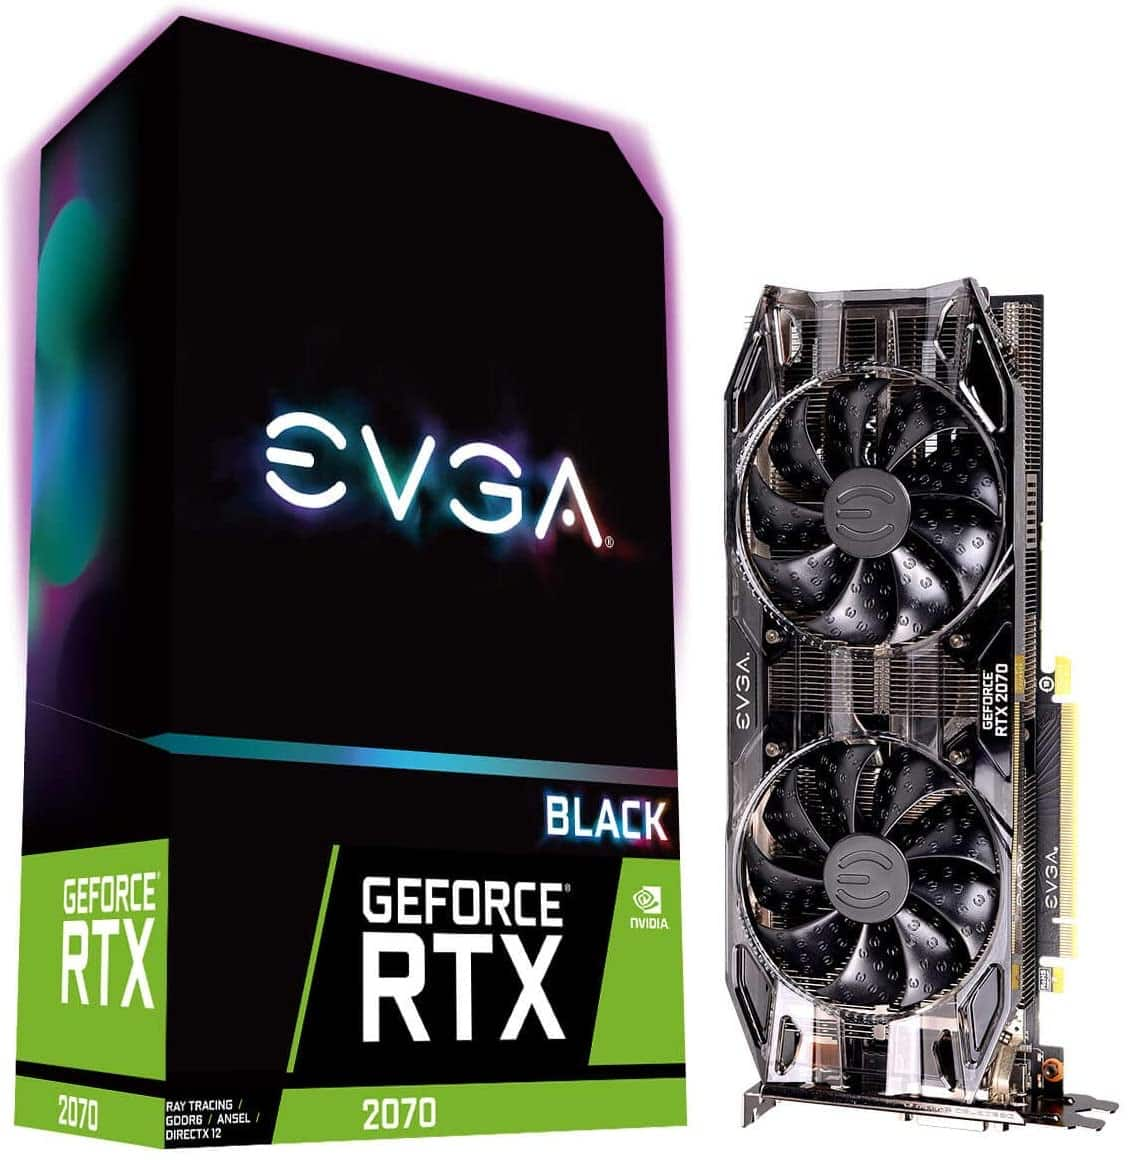 EVGA-GeForce-RTX-2070-Black-Gaming